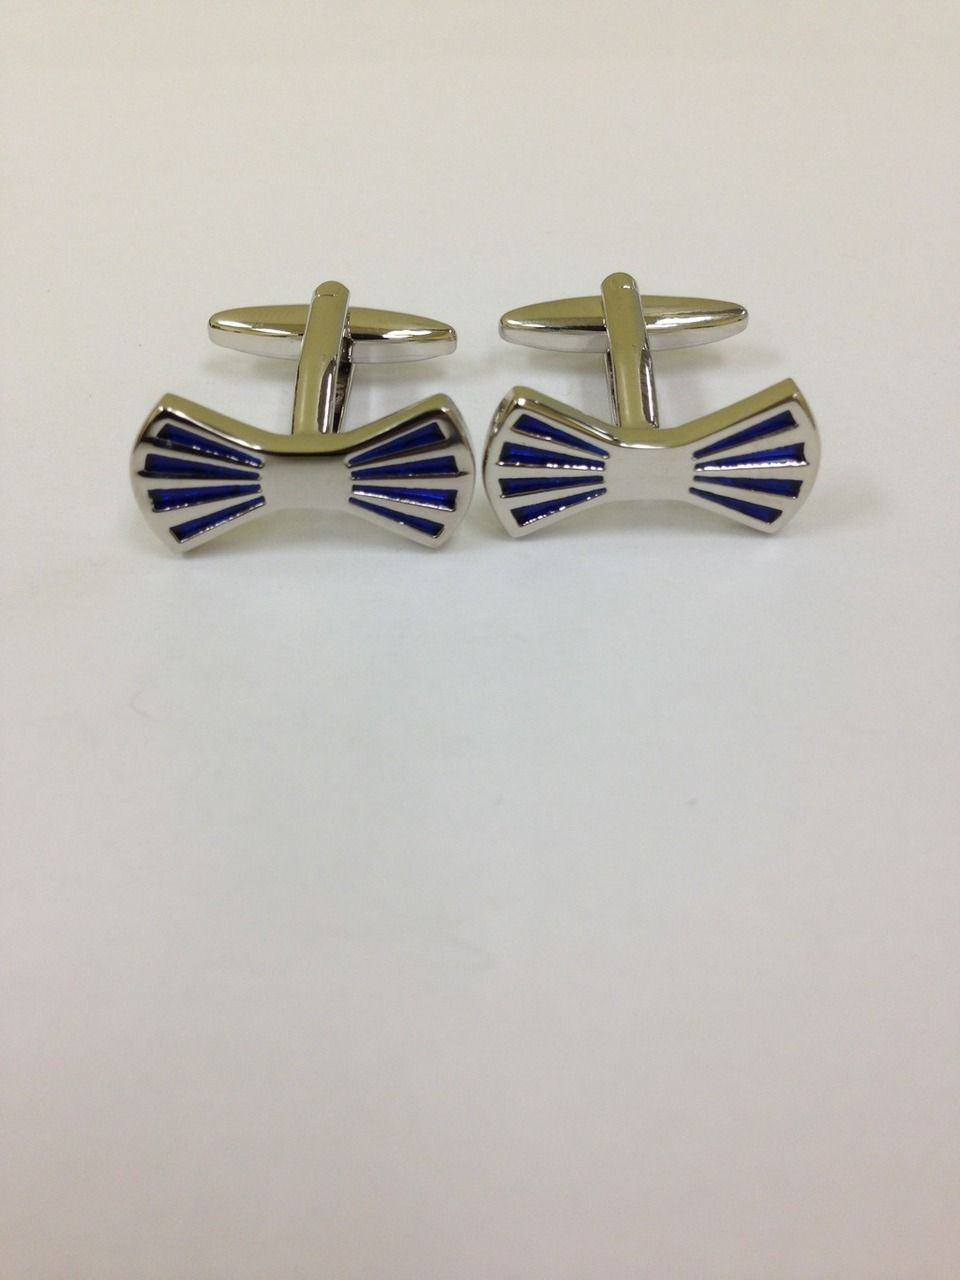 2 Pc. Blue Bow Tie Formal Fashion Design Cufflinks